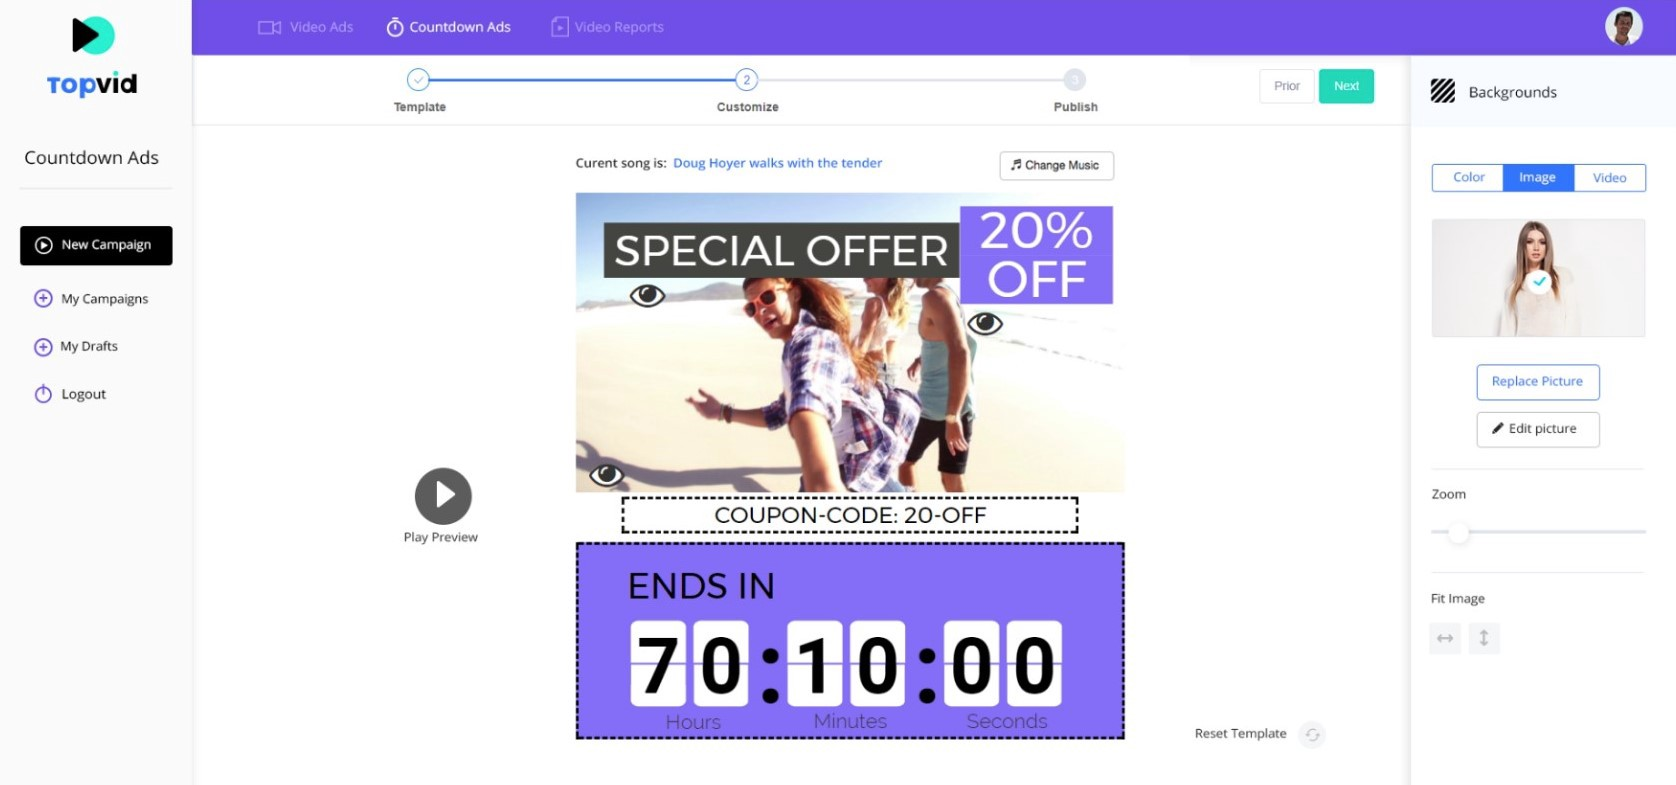 Getting started with — Facebook Countdown Ads - TopVid - Medium